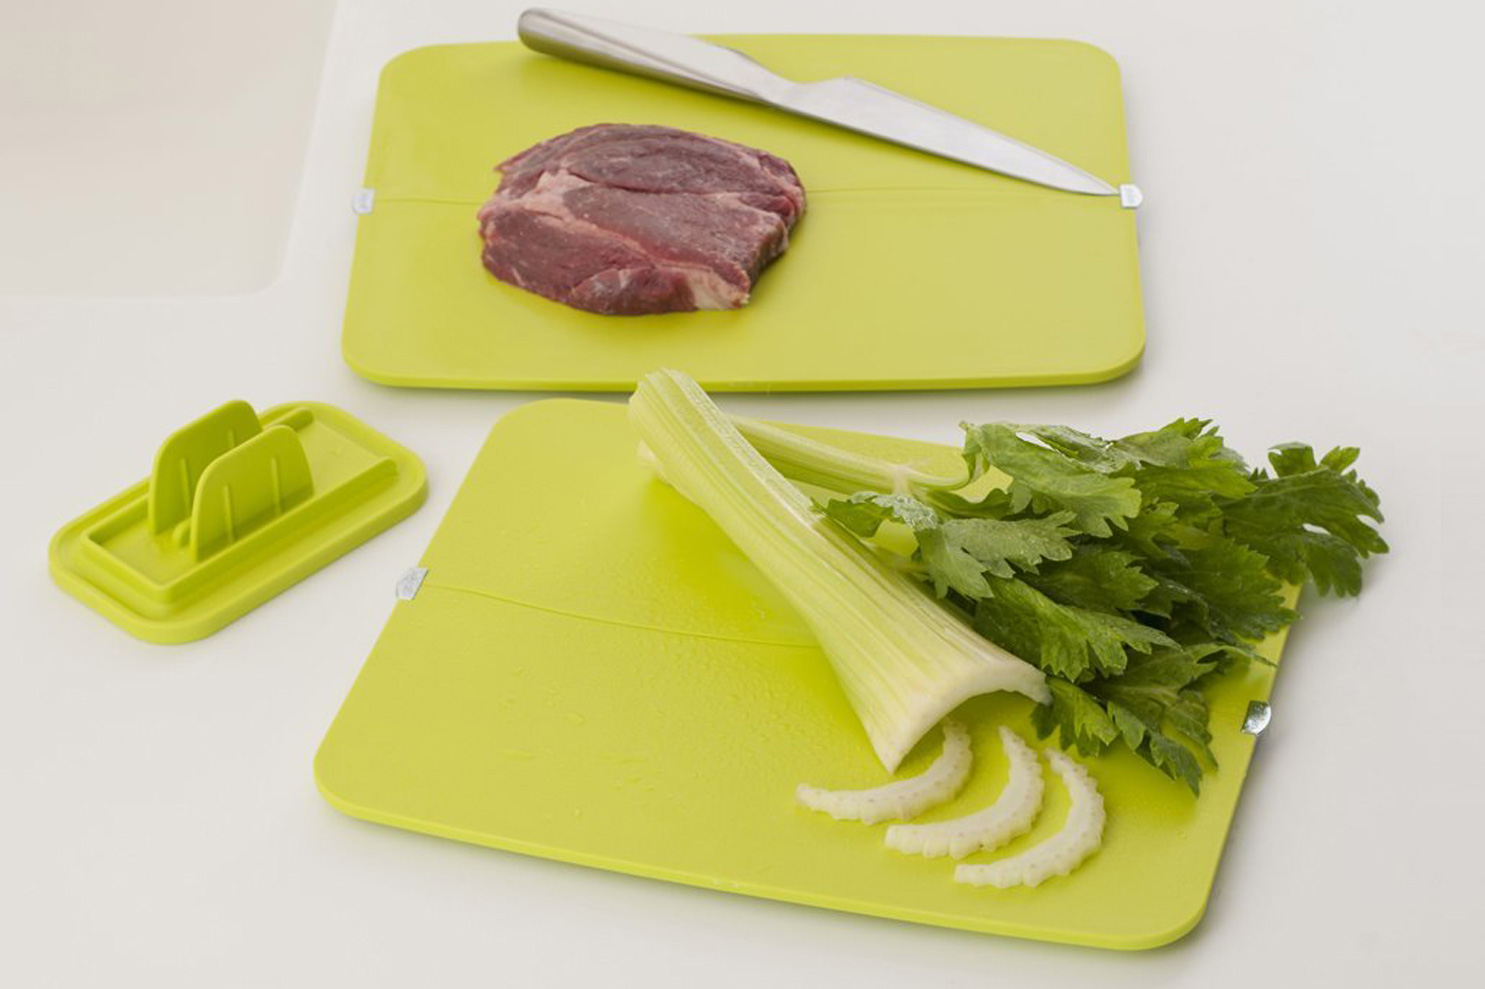 17-TulettDesign-Kaga-chopping-Board-4